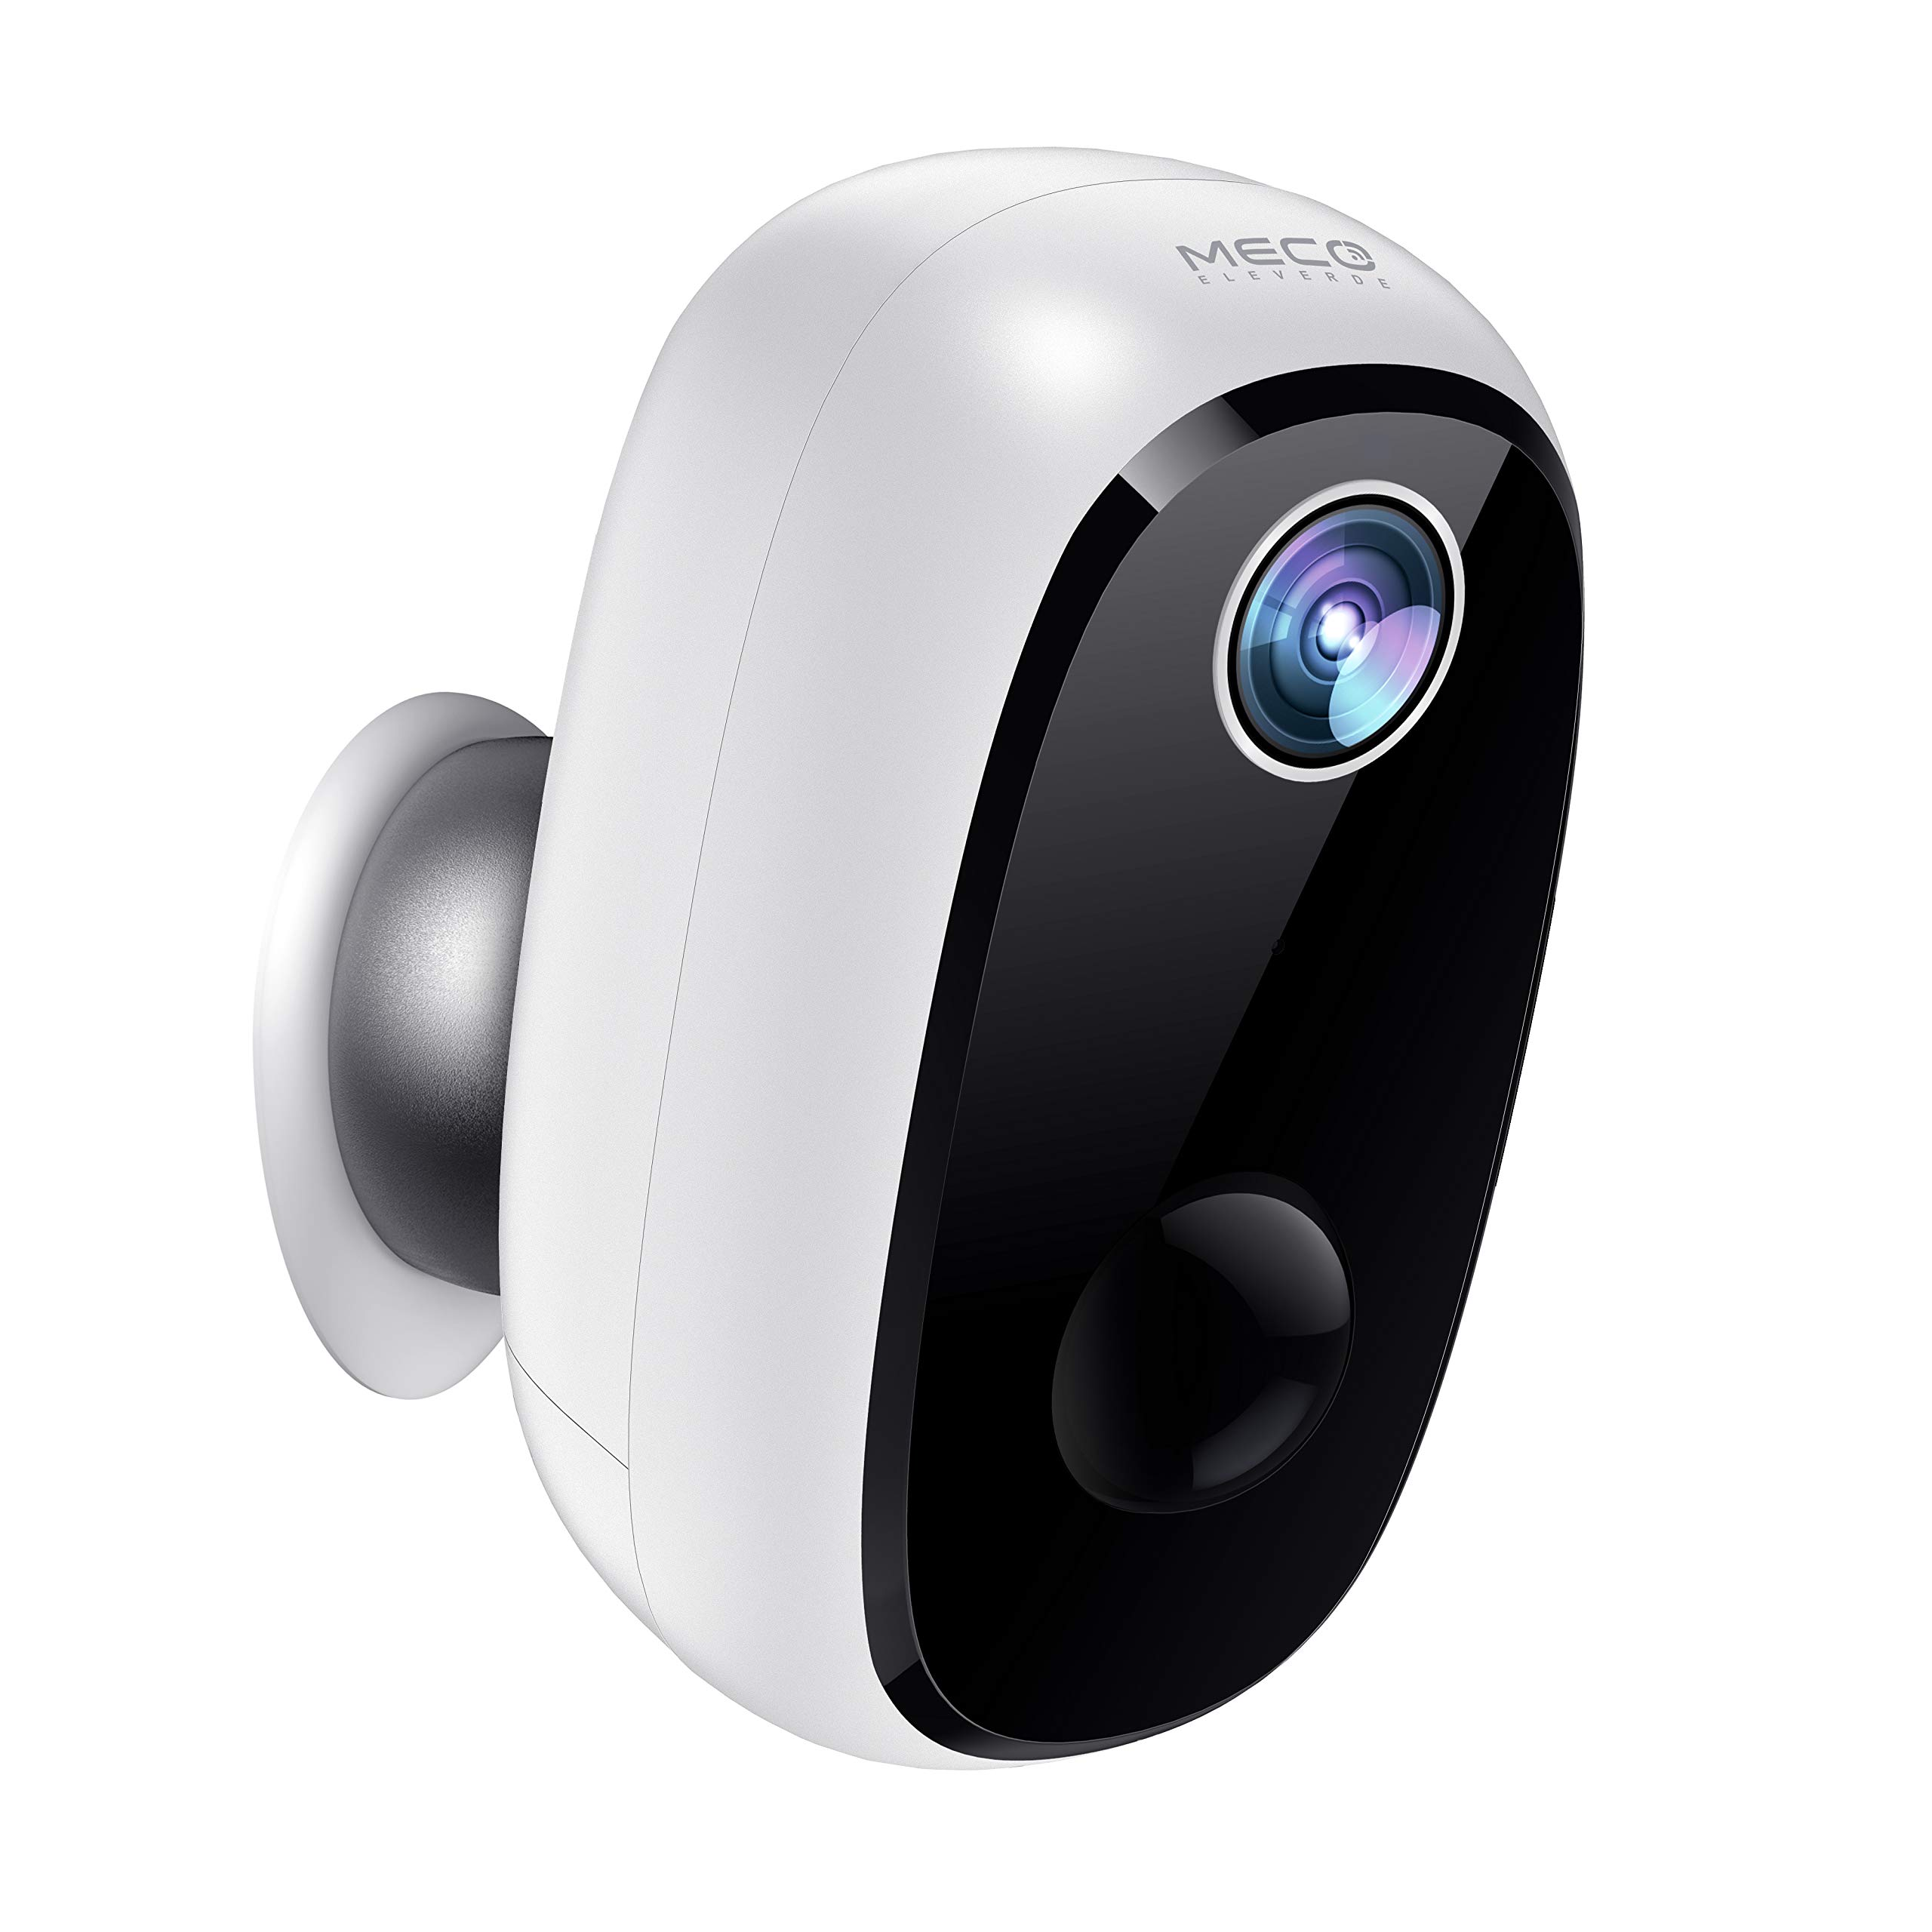 Wireless Battery Powered Camera, MECO 1080P Rechargeable Home Security System, Night Vision, Indoor/Outdoor WiFi Camera with Motion Detection, 2-Way Audio Talk, IP65 Waterproof, 2.4GHz WiFi by MECO